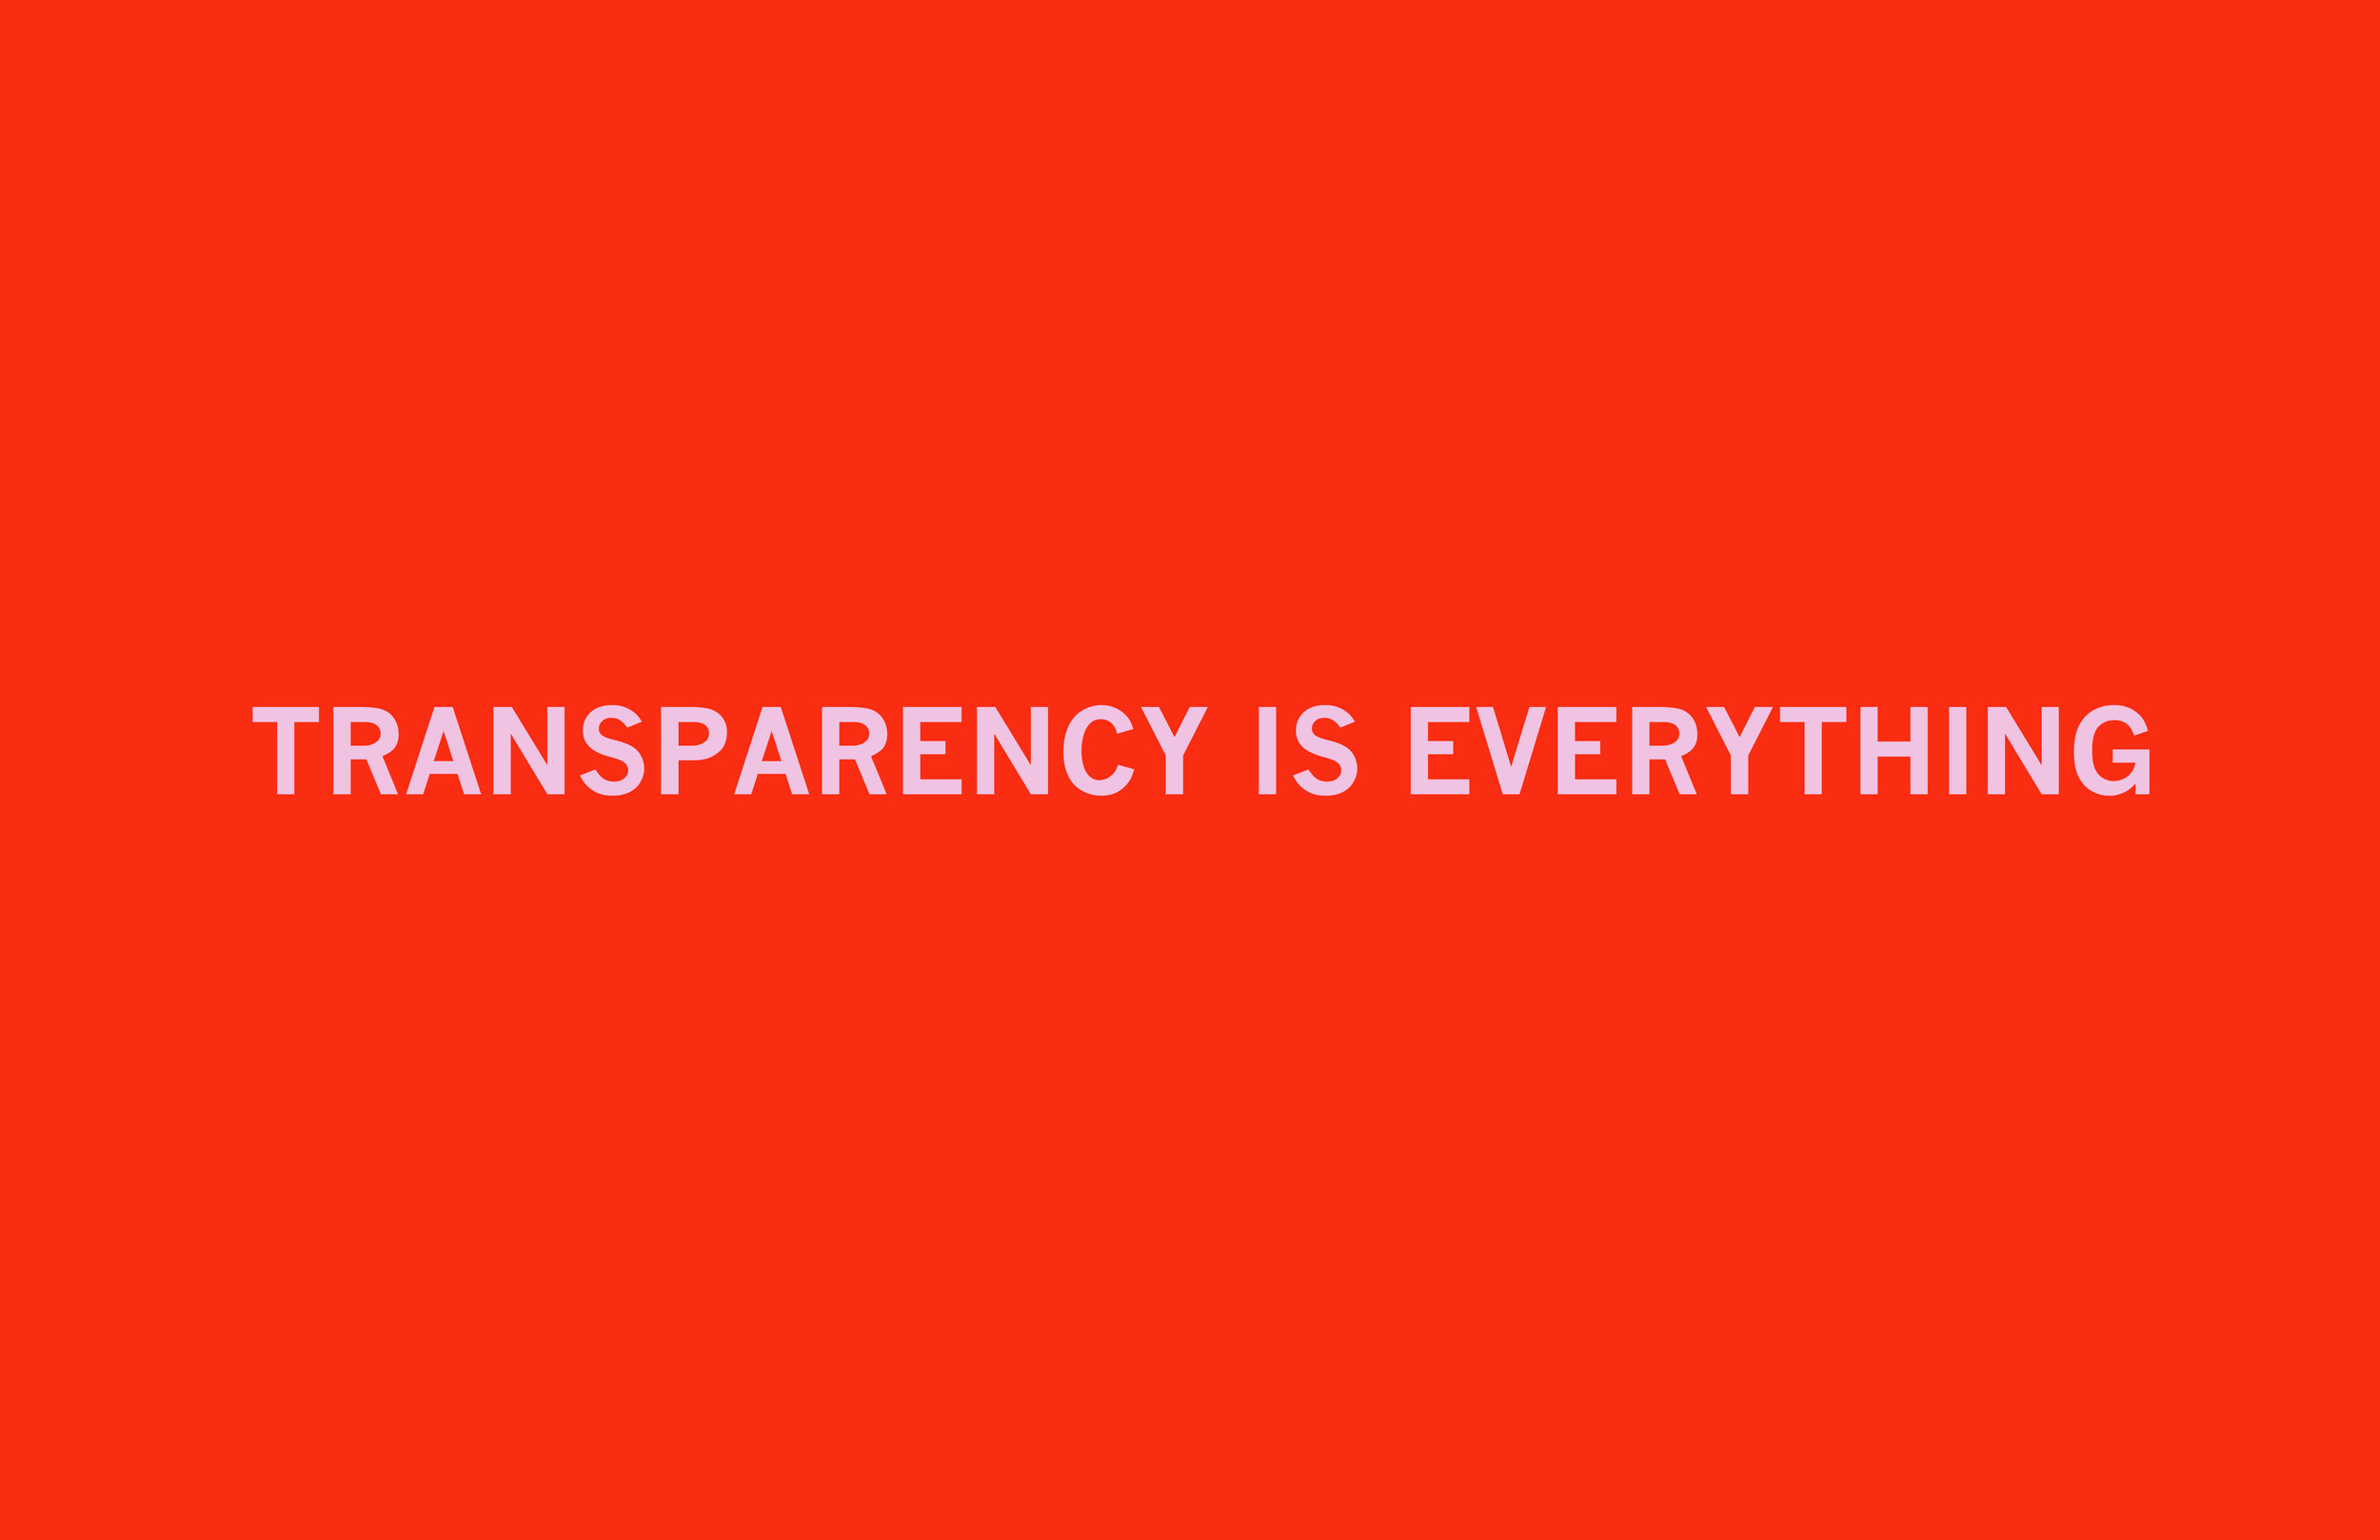 Transparency Is Everything  Archival inkjet print 19 x 26 inches 2011